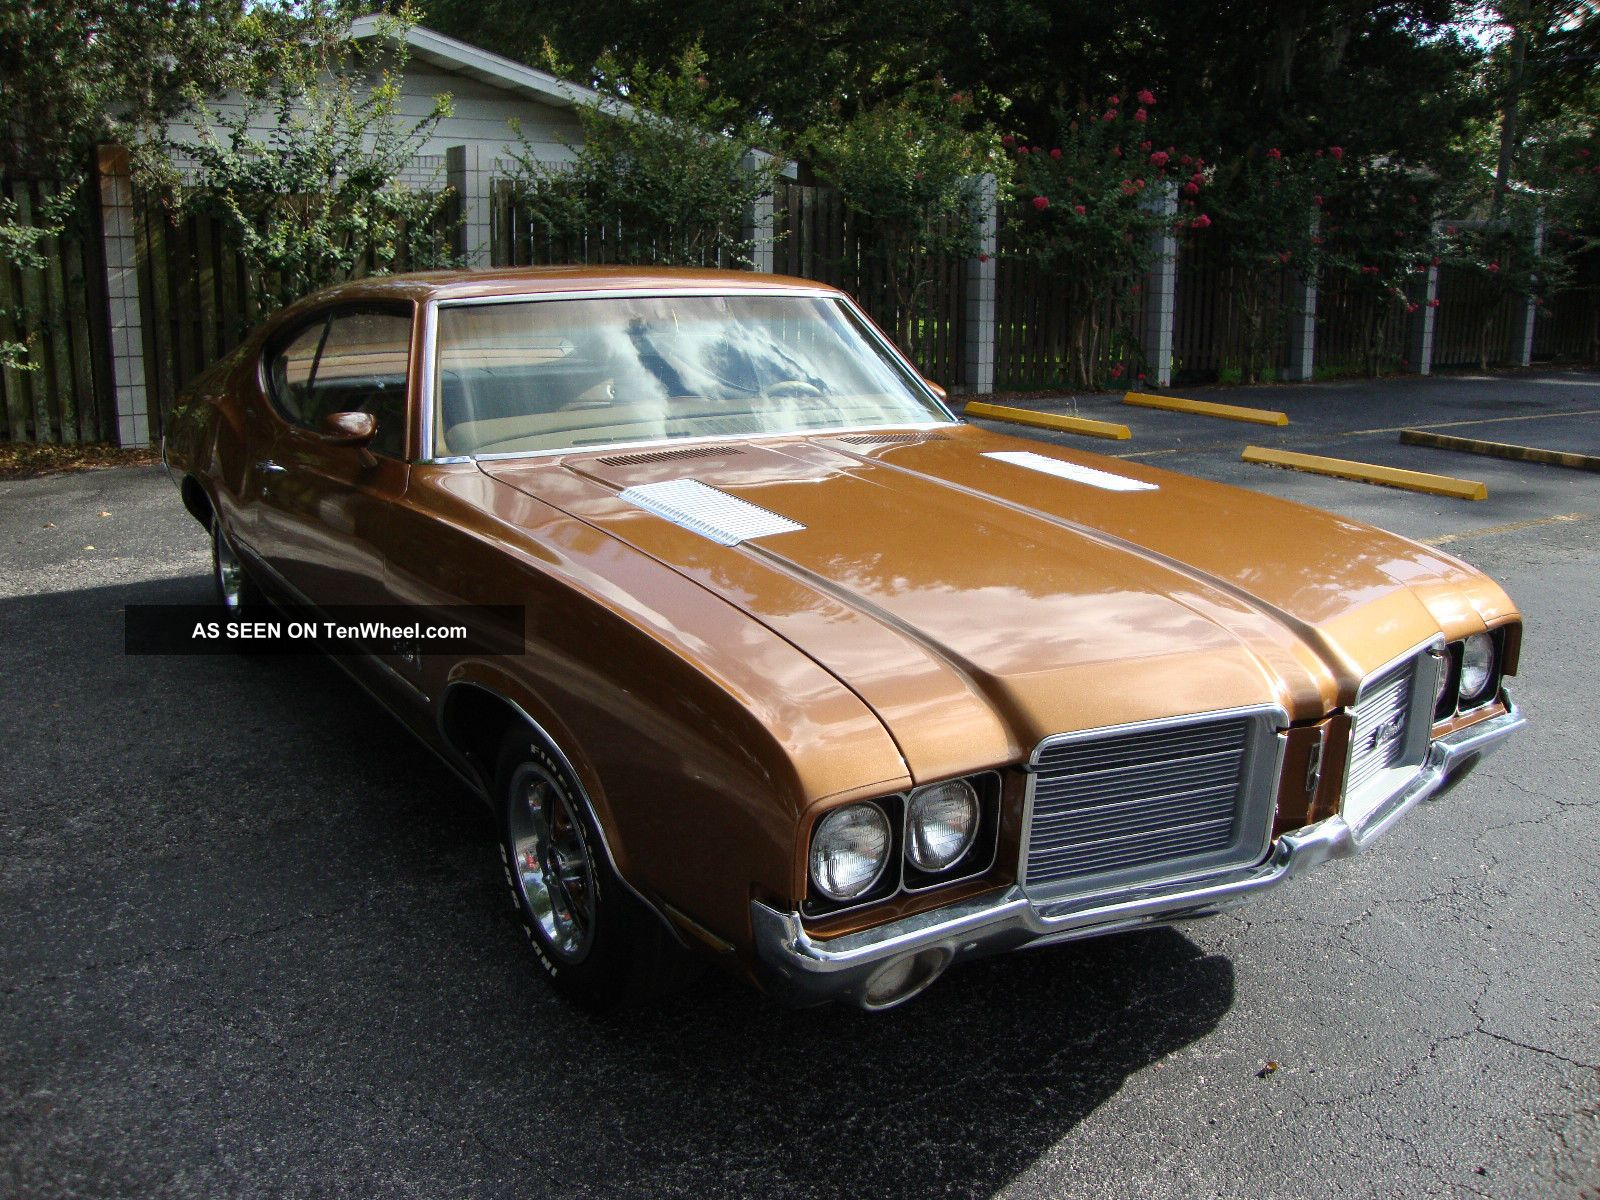 1972 Oldsmobile Cutlass S Cutlass photo